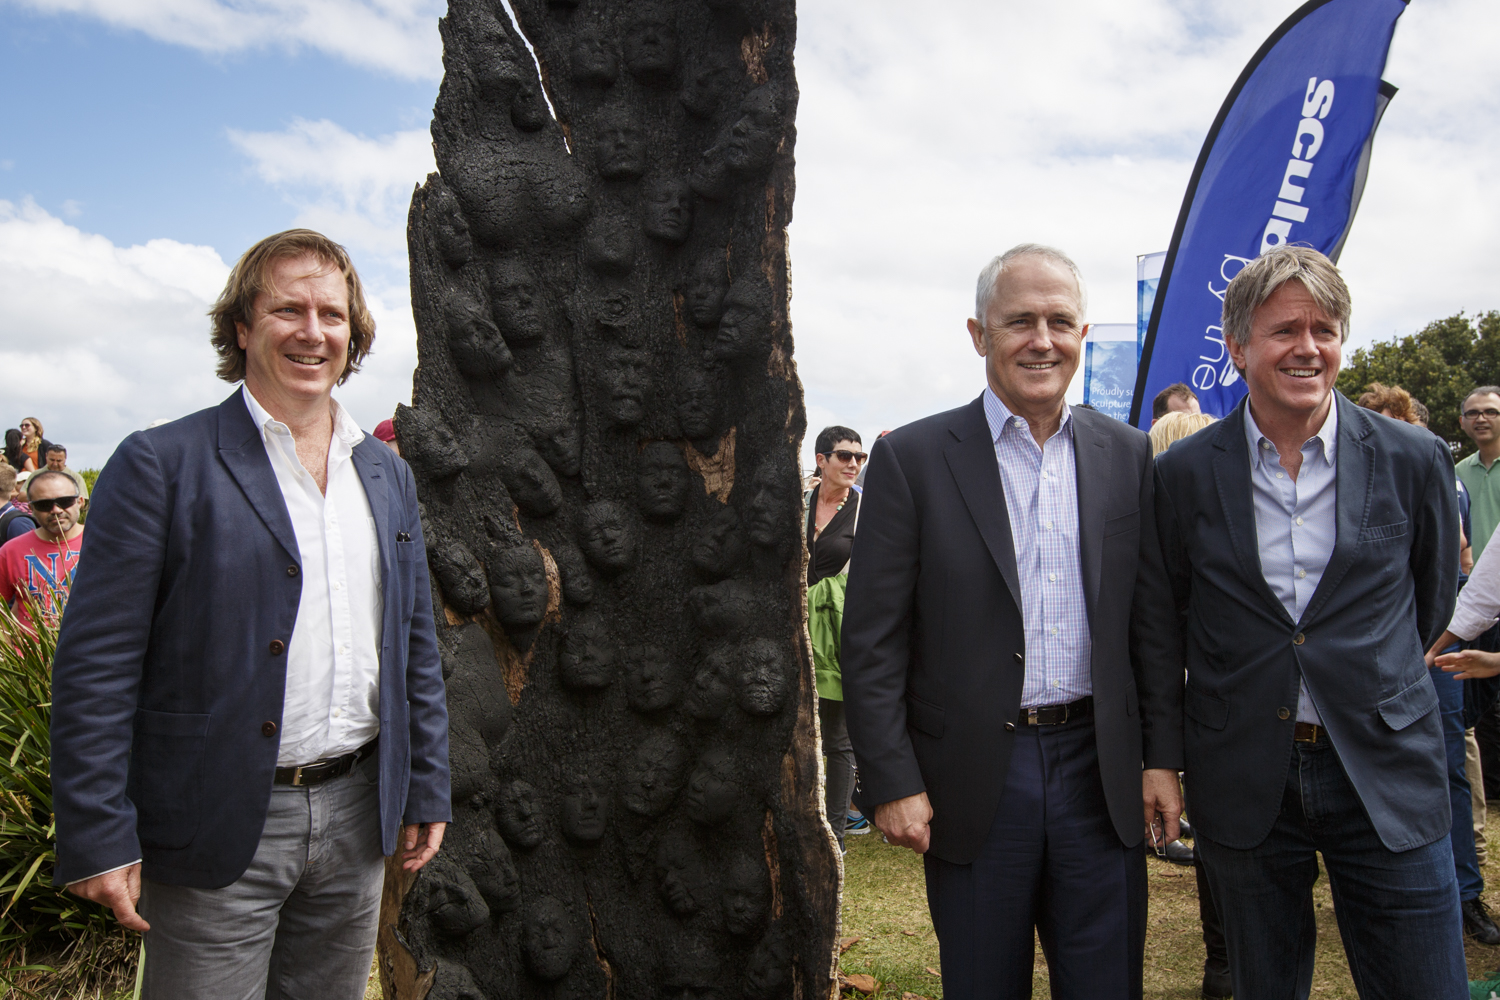 David Handley, Founding Director of Sculpture by the Sea, The Hon. Malcolm Turnbull PM, Ian McGill, Partner at Allens Linklaters